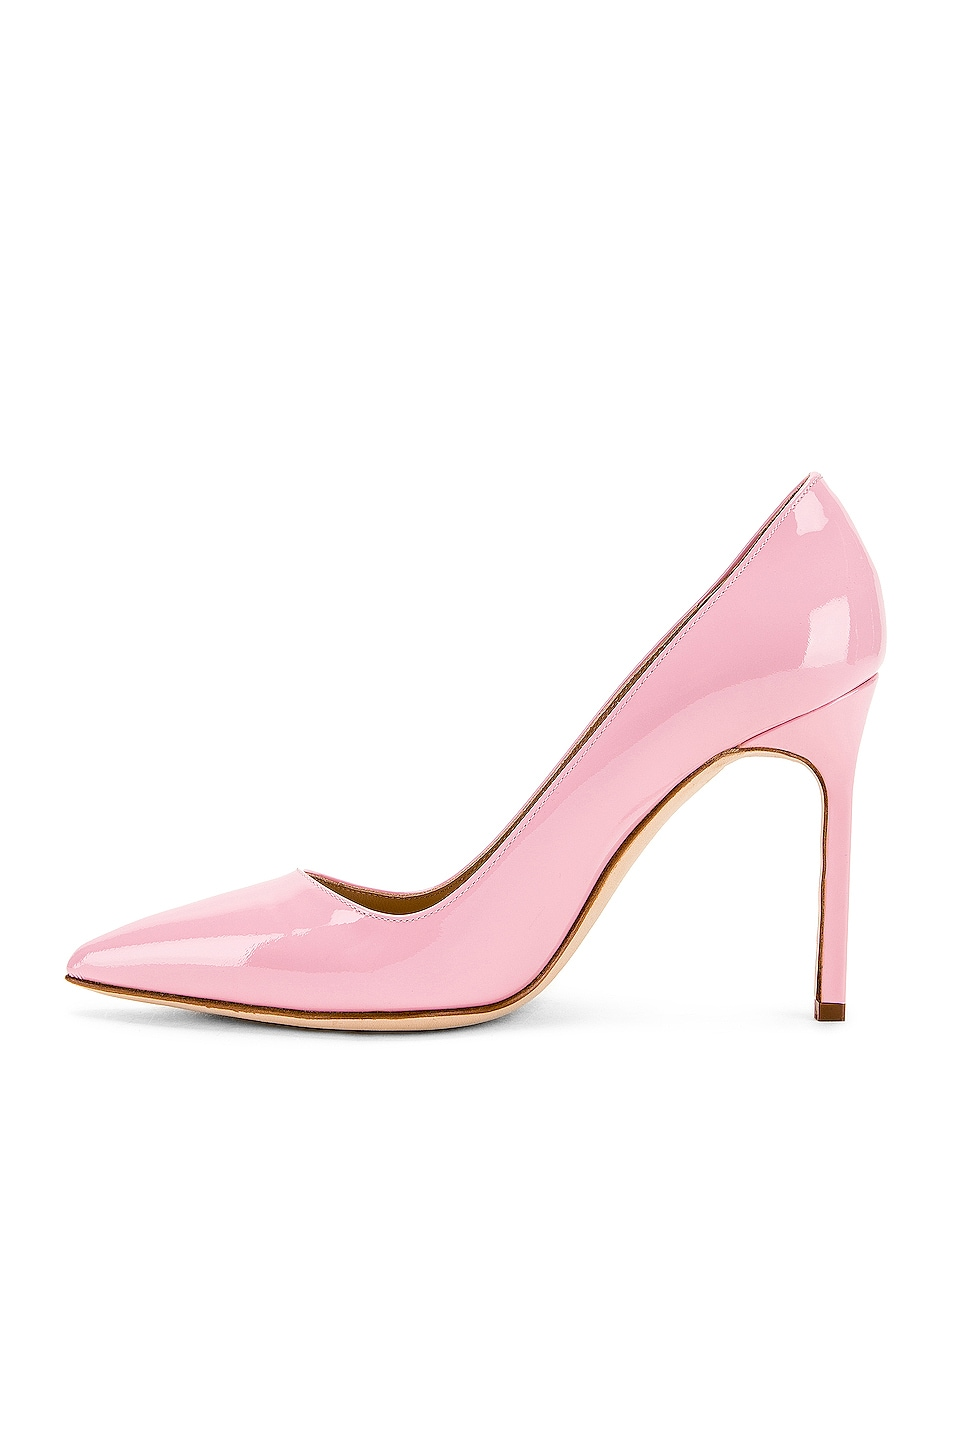 Image 5 of Manolo Blahnik BB Pump in Baby Pink Patent